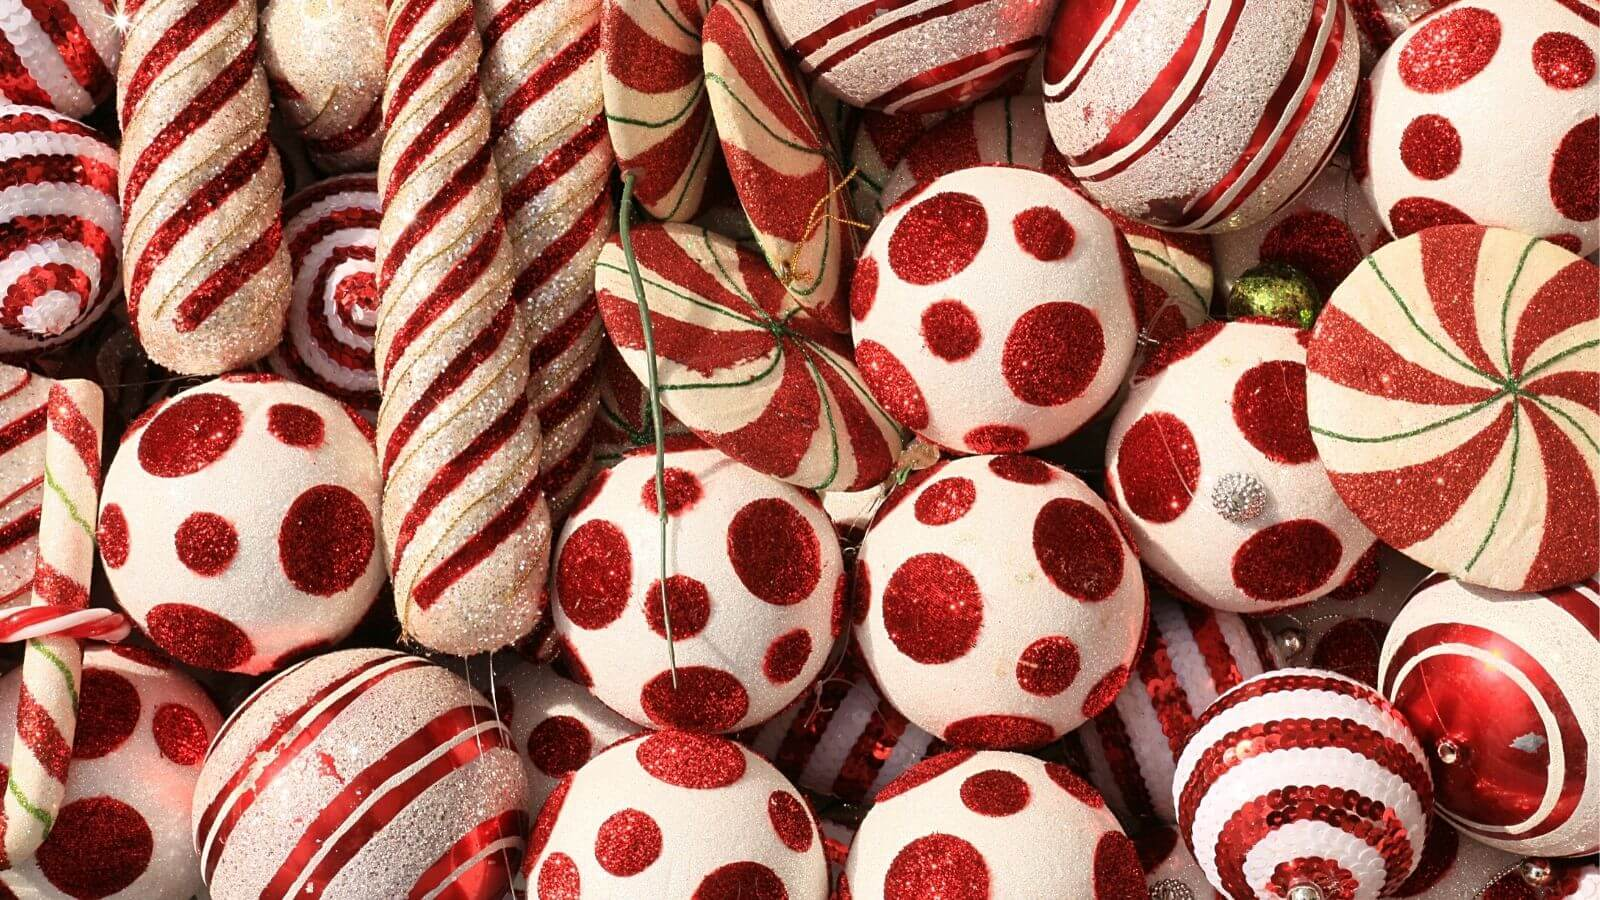 Lots of candy cane patterned baubles